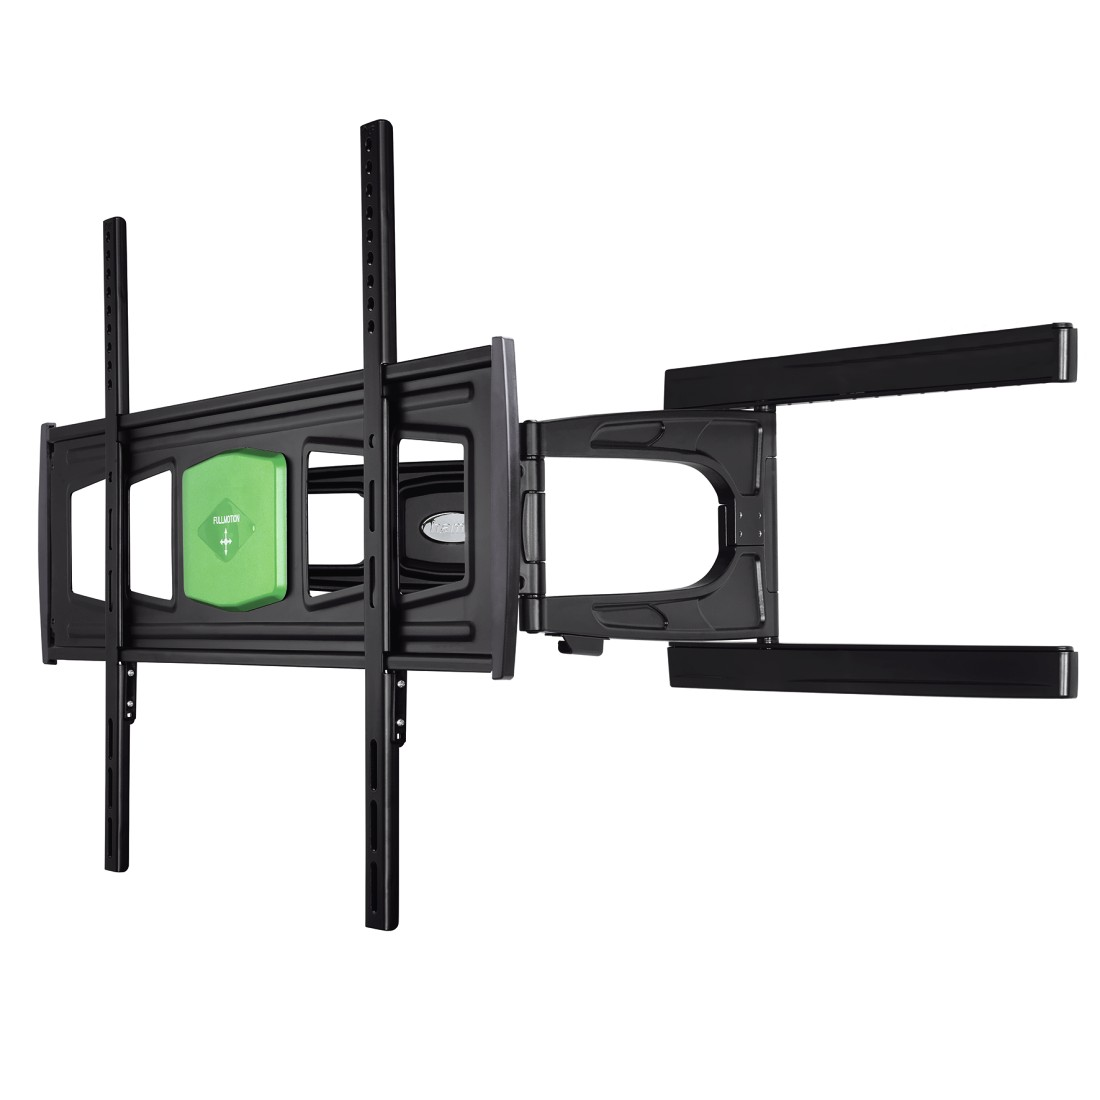 abx High-Res Image - Hama, Ultraslim FULLMOTION TV Wall Bracket, 3 stars, 165 cm (65), 2 arms, bk